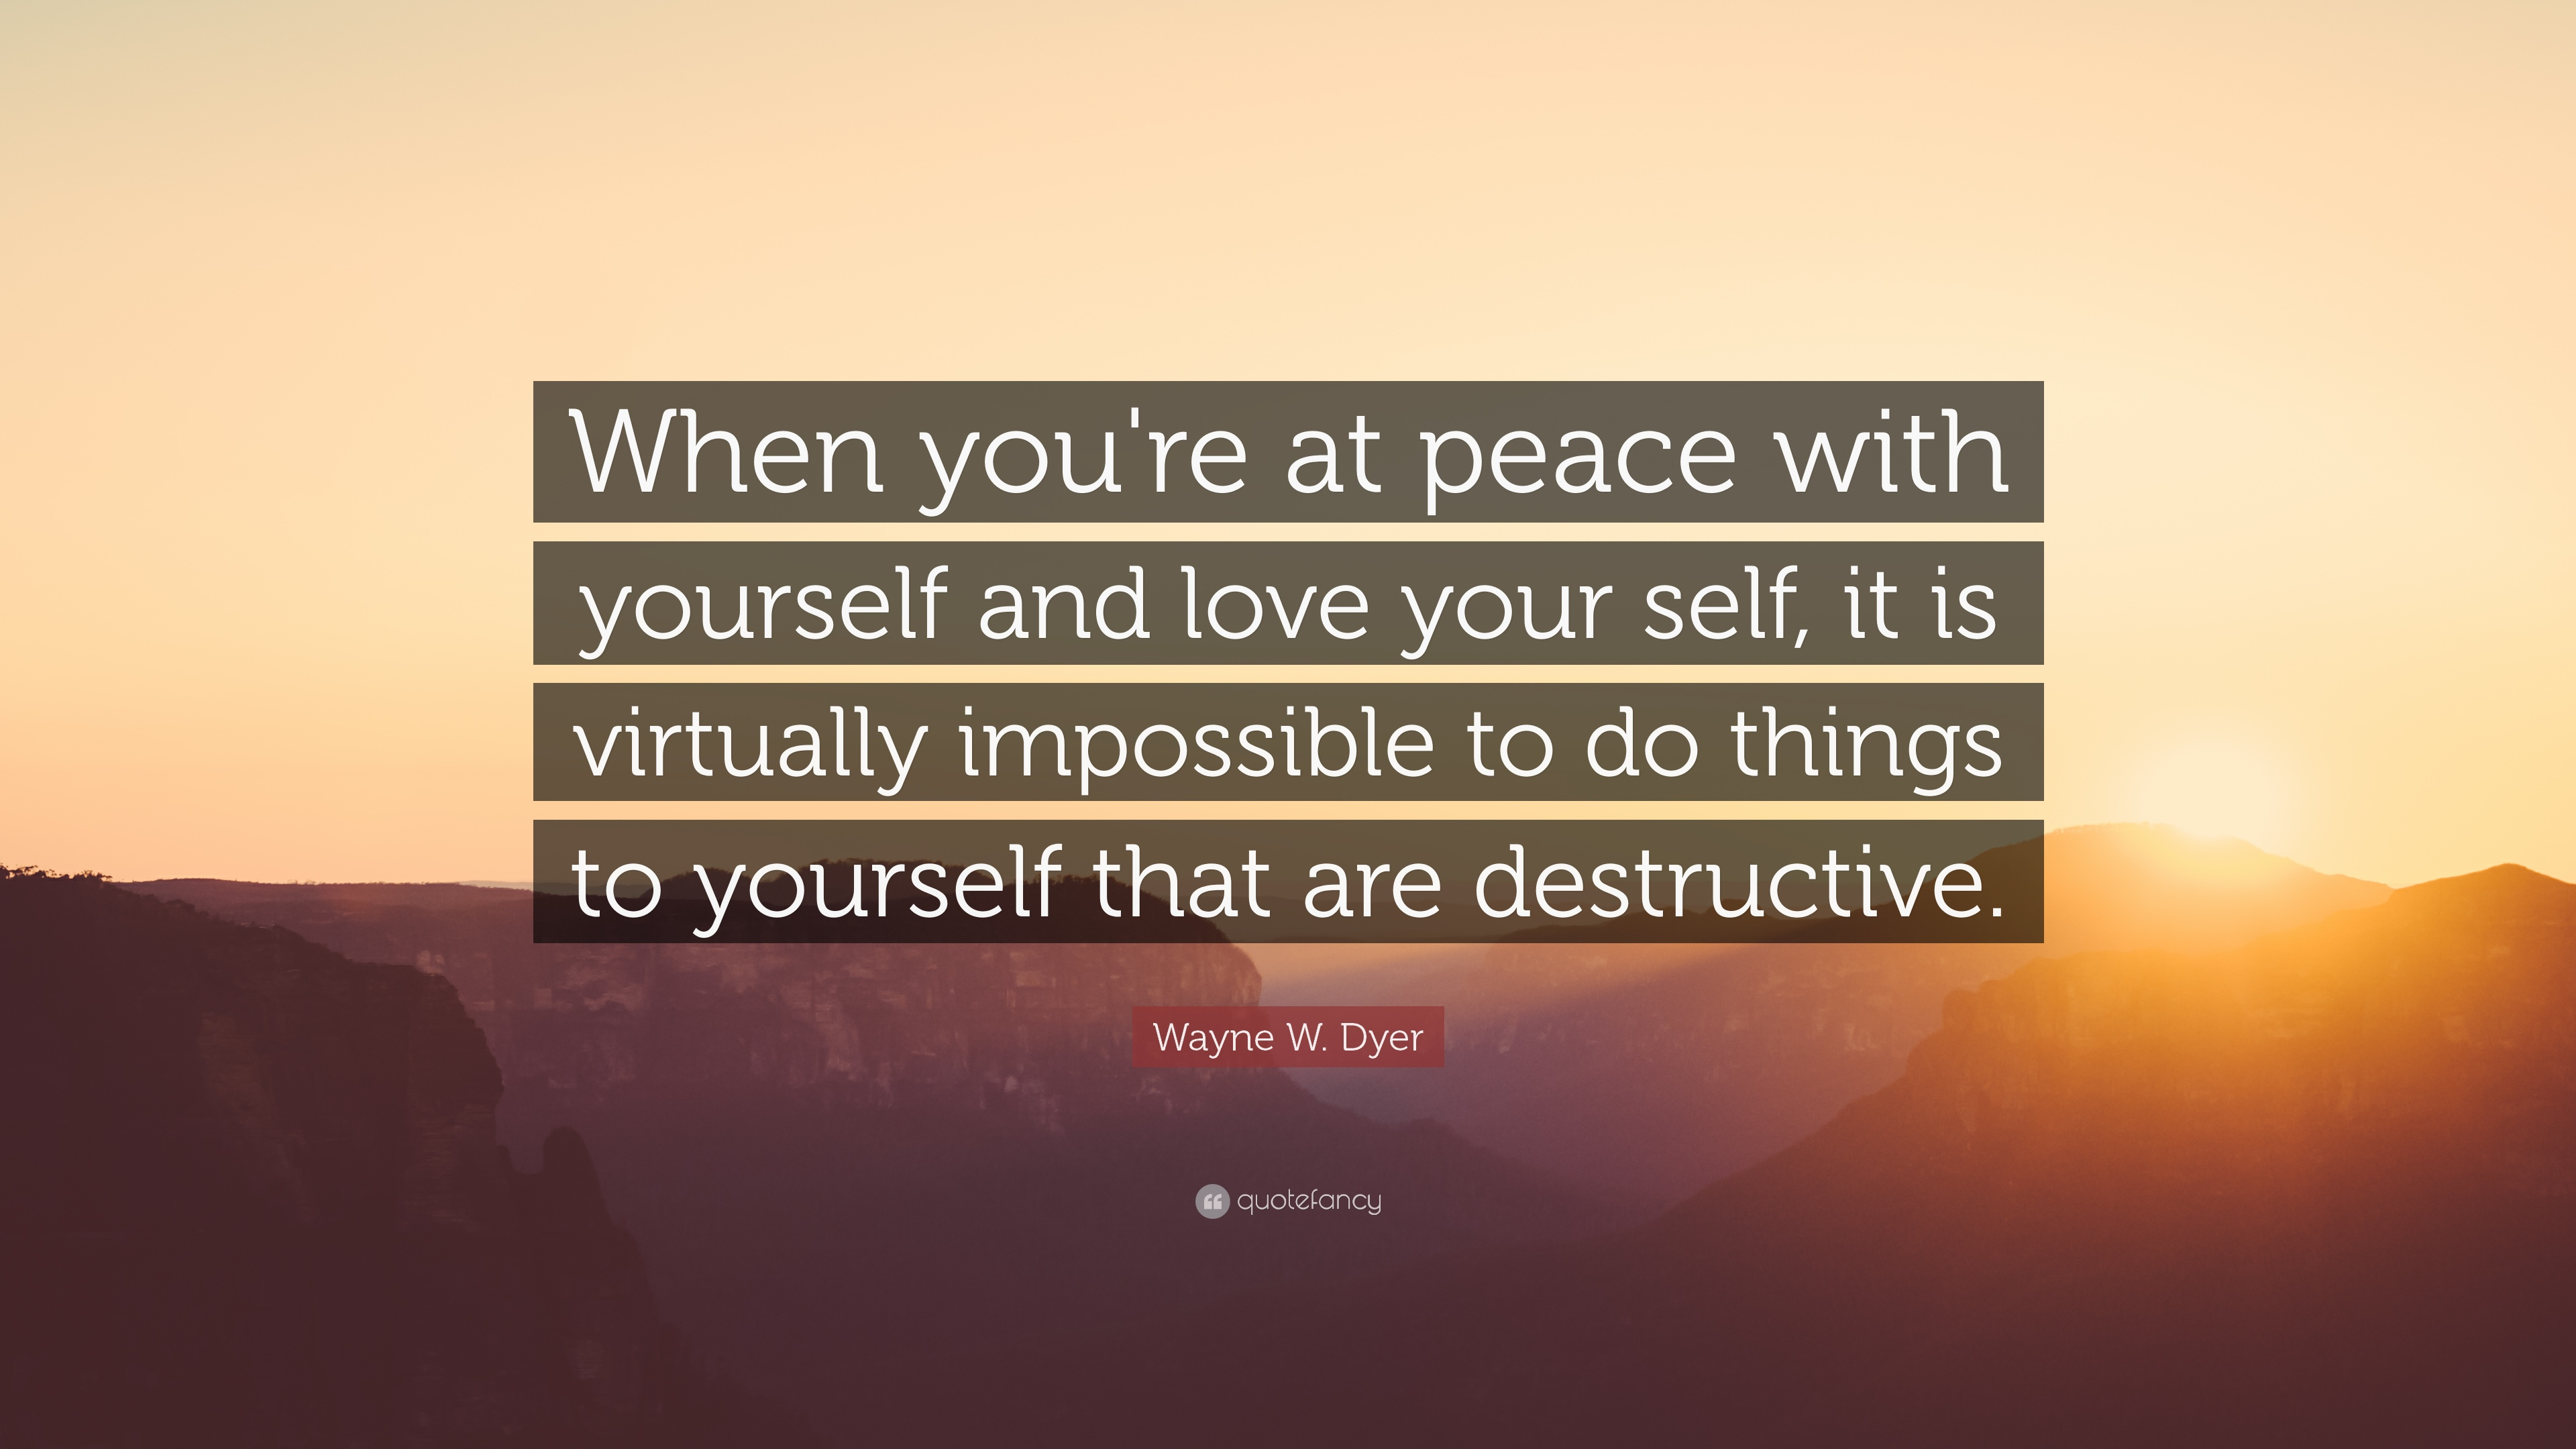 Wayne W Dyer Quote When Youre At Peace With Yourself And Love